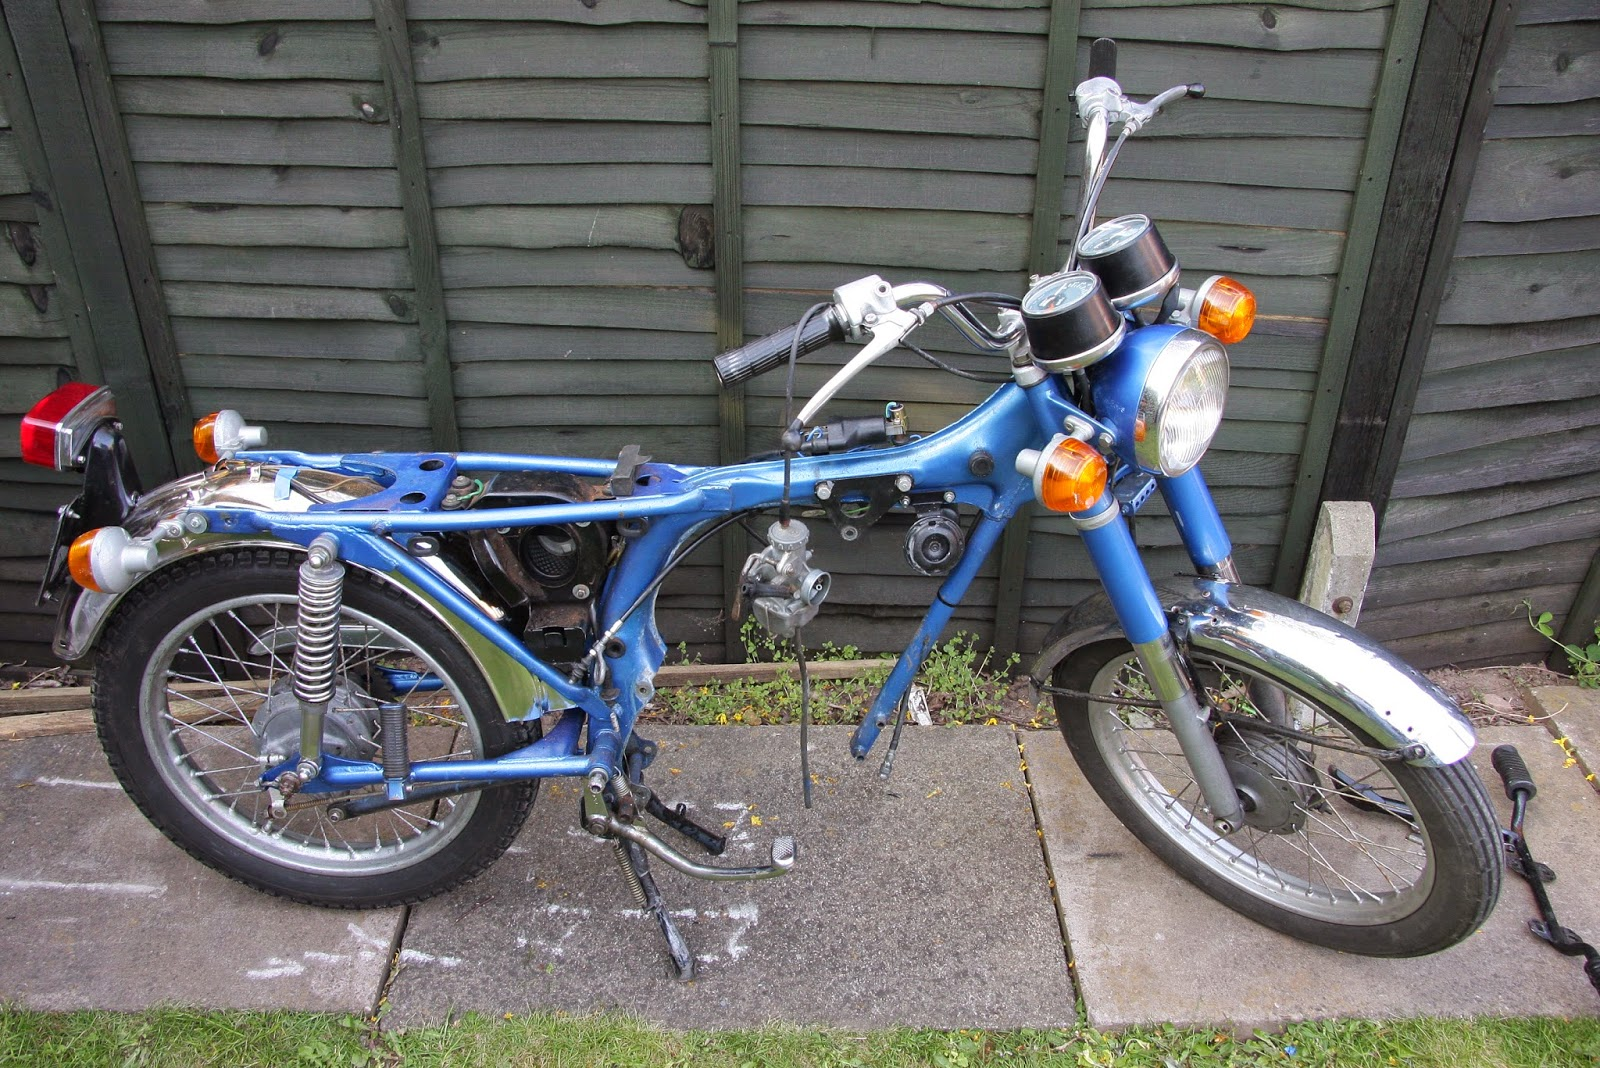 Honda Cb 125 Restoration Cb125s Engine Removal Chilton Electrical Wiring Diagram See Cb125 Engines For Sale In The Uk Here